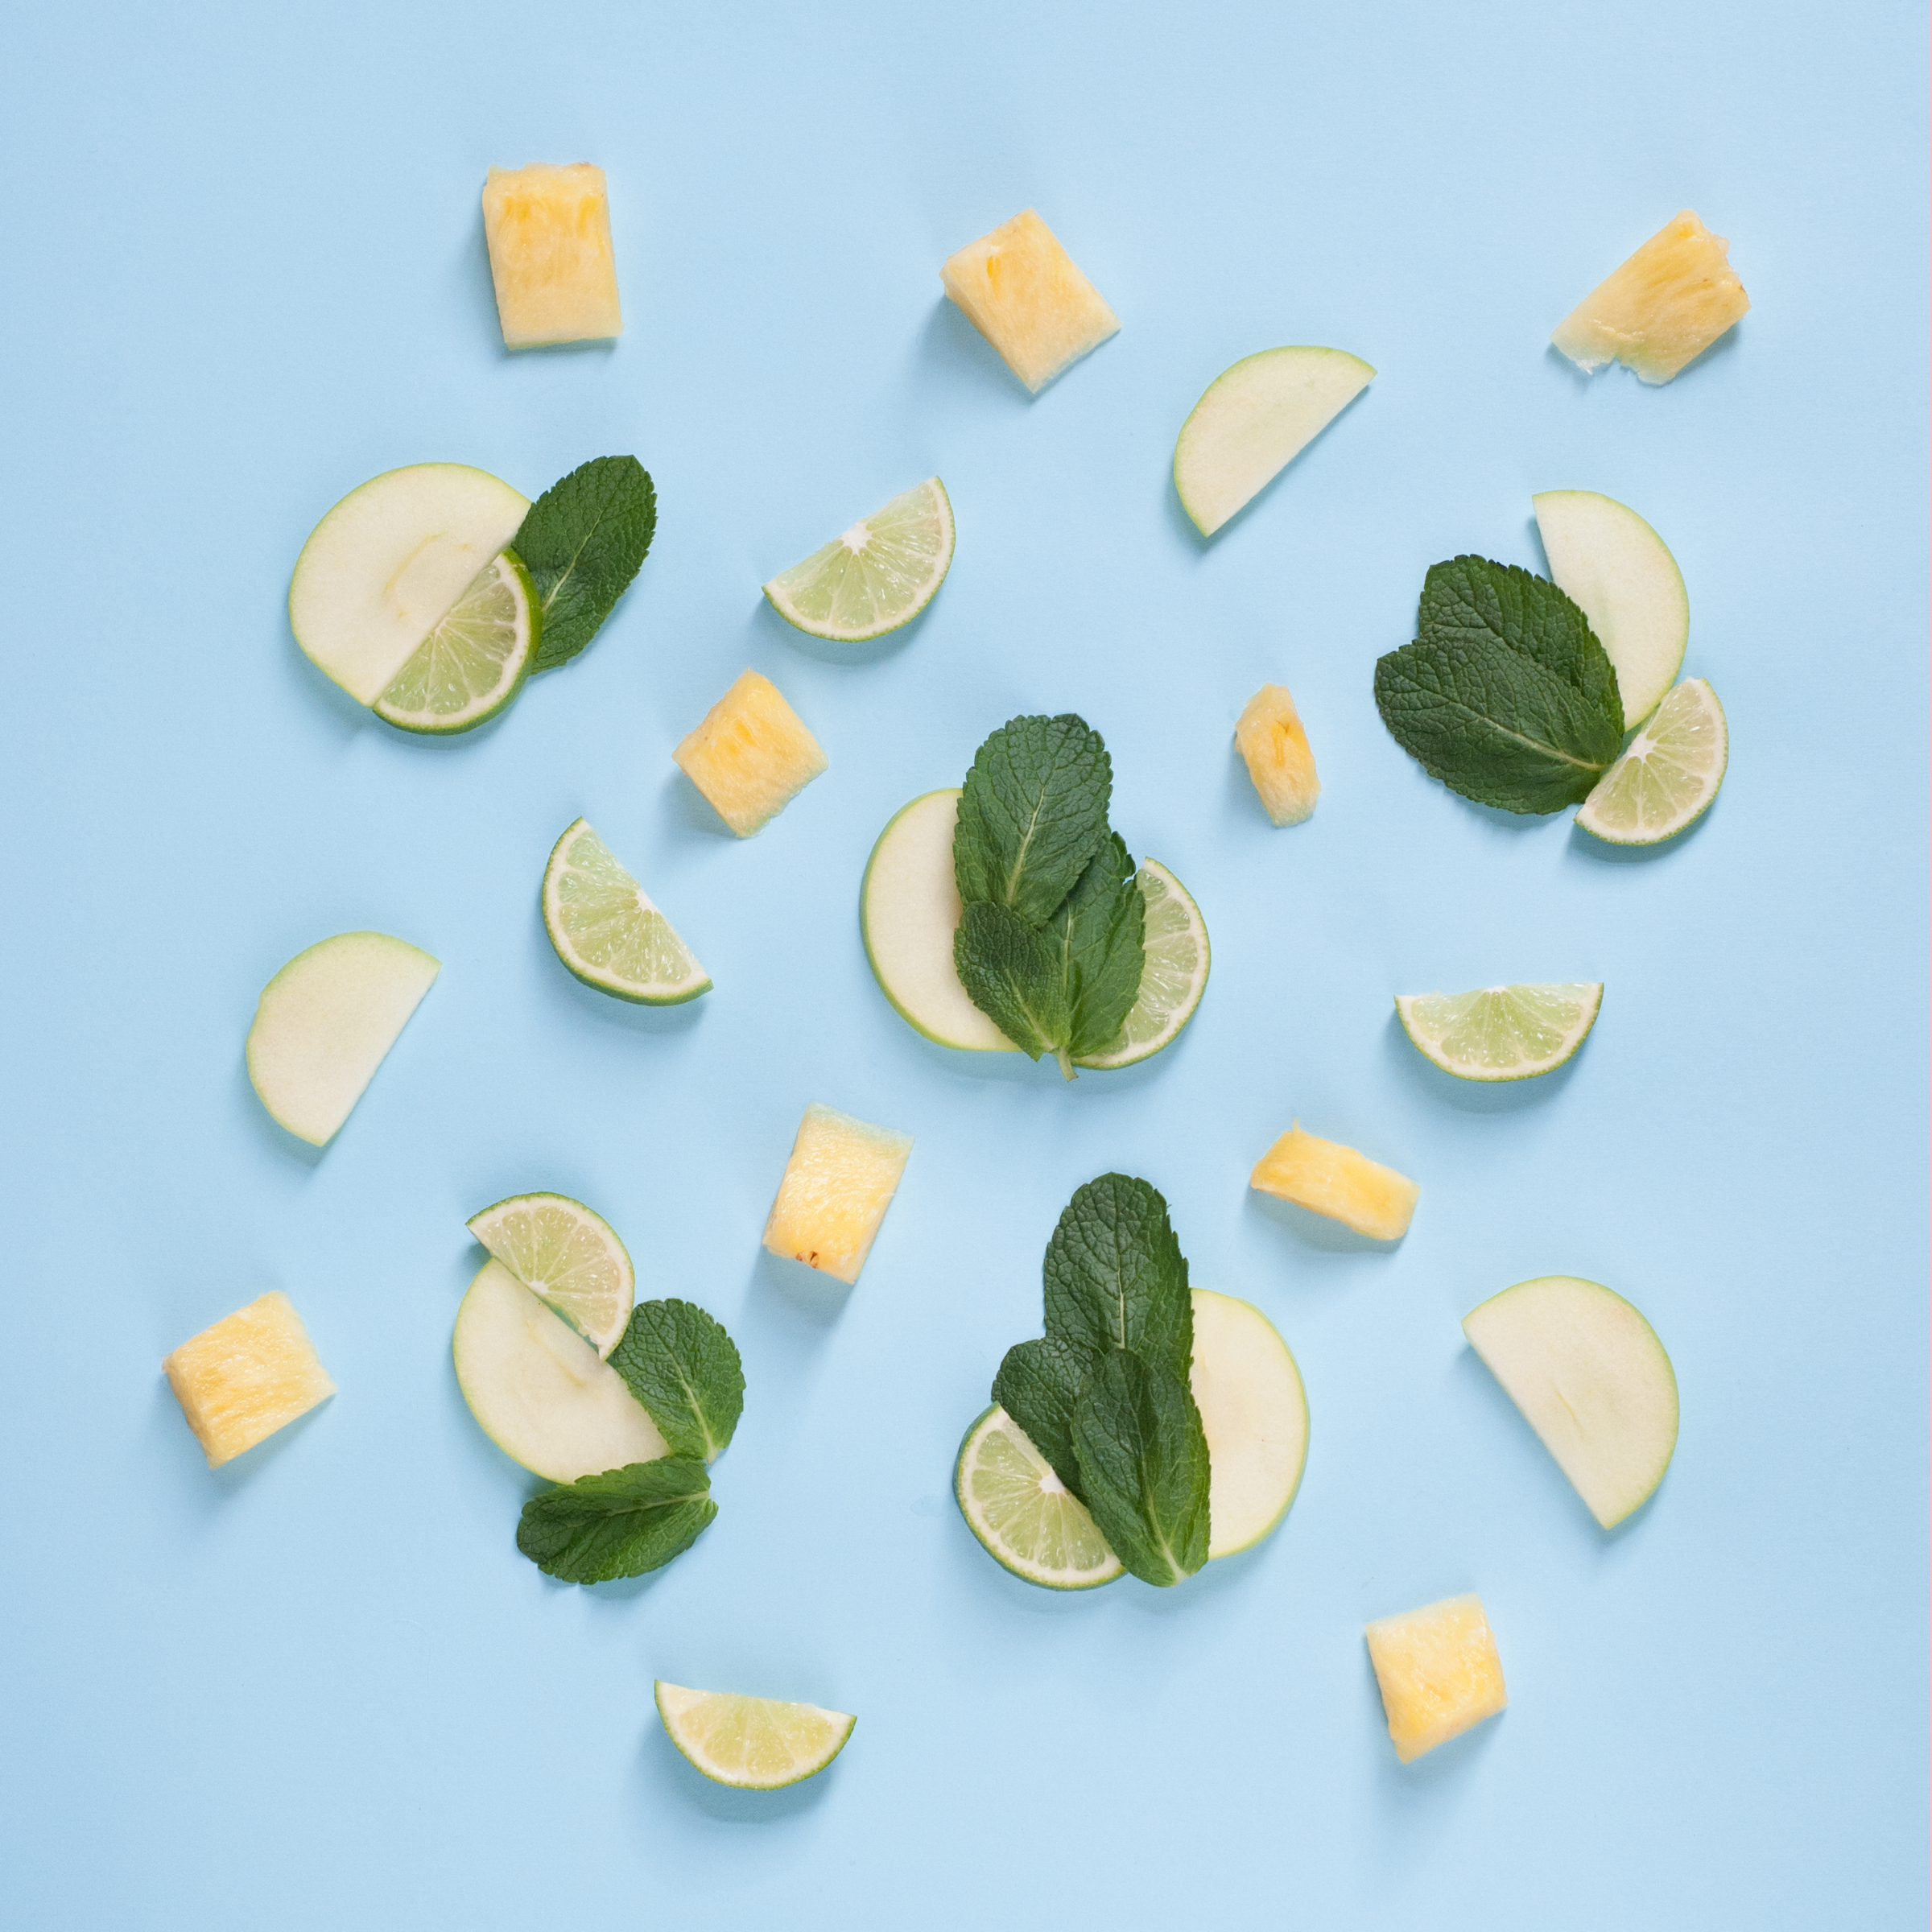 Boost Immunity? Or eat to reduce infection? -